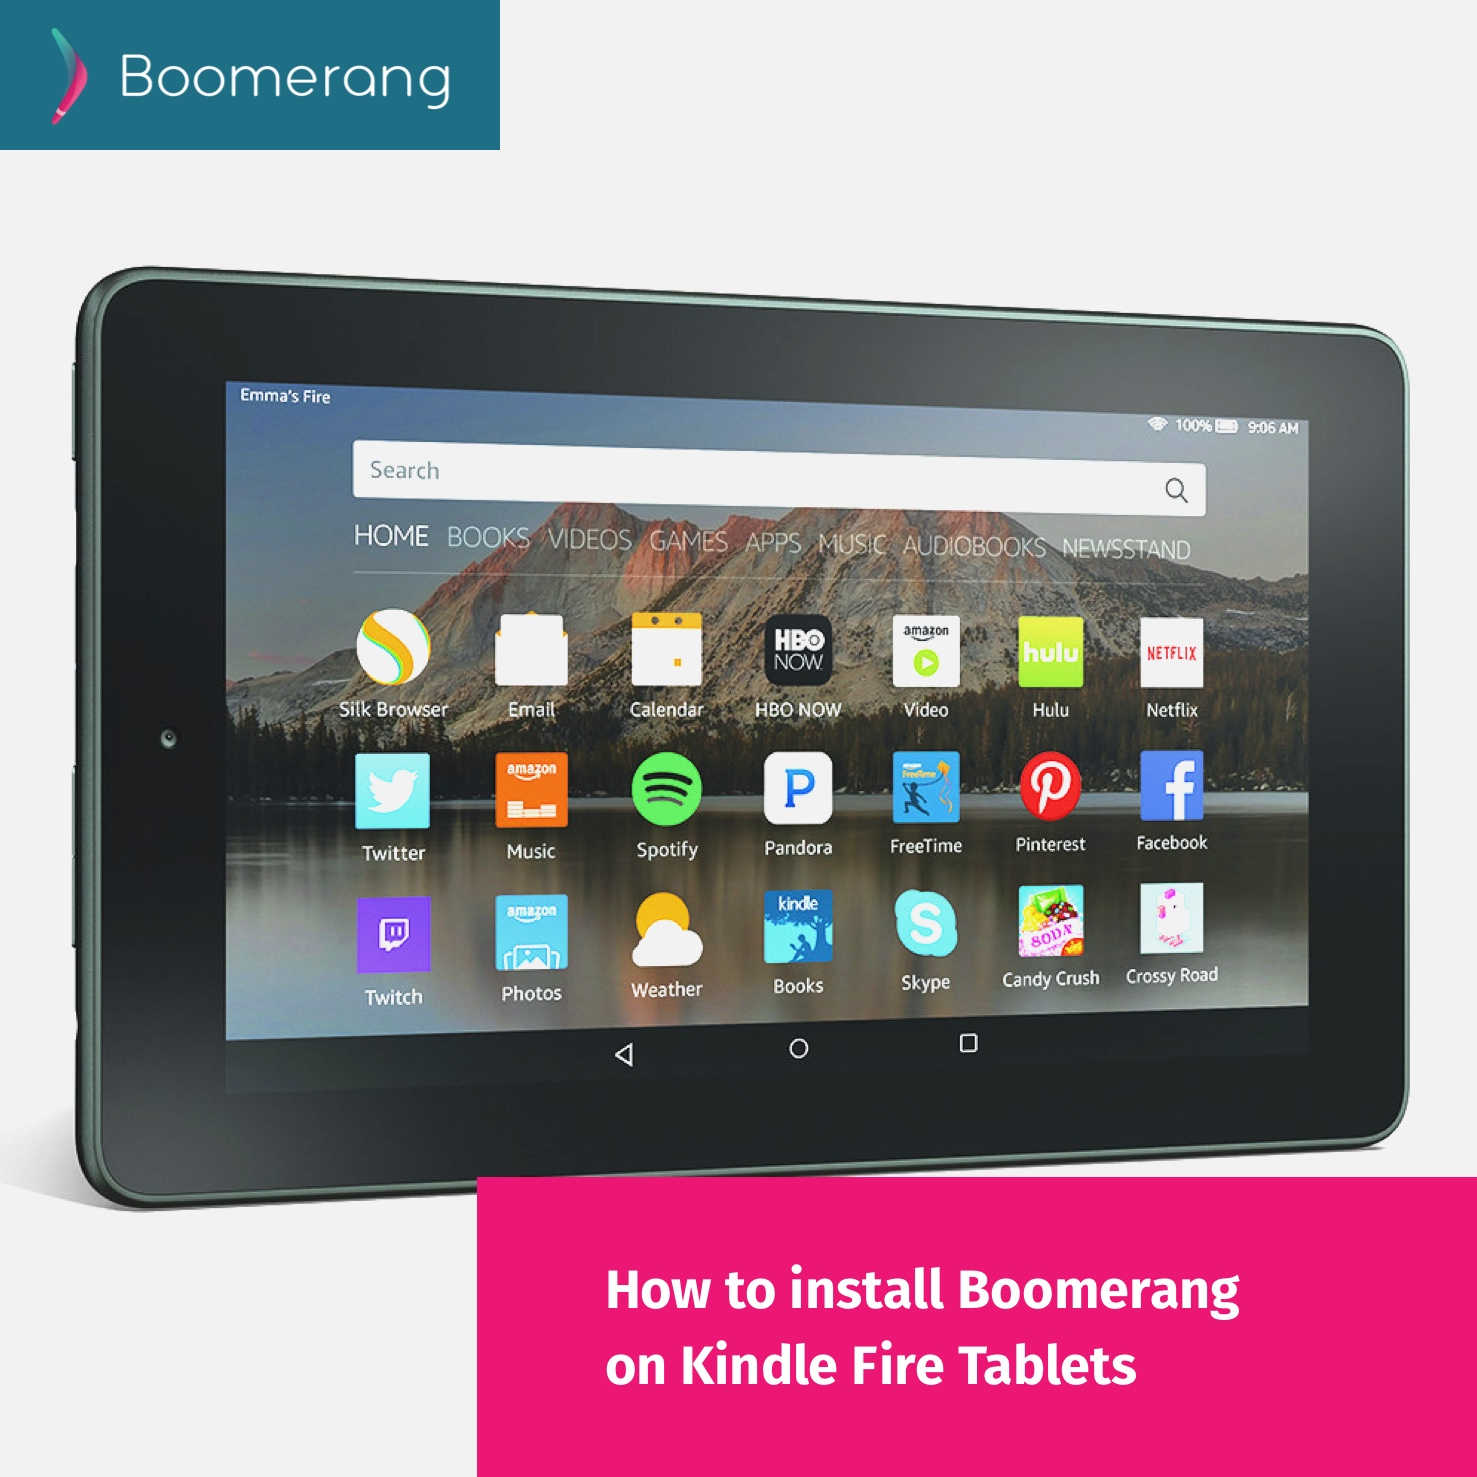 How to install Boomerang Parental Control on Kindle Fire Tablets